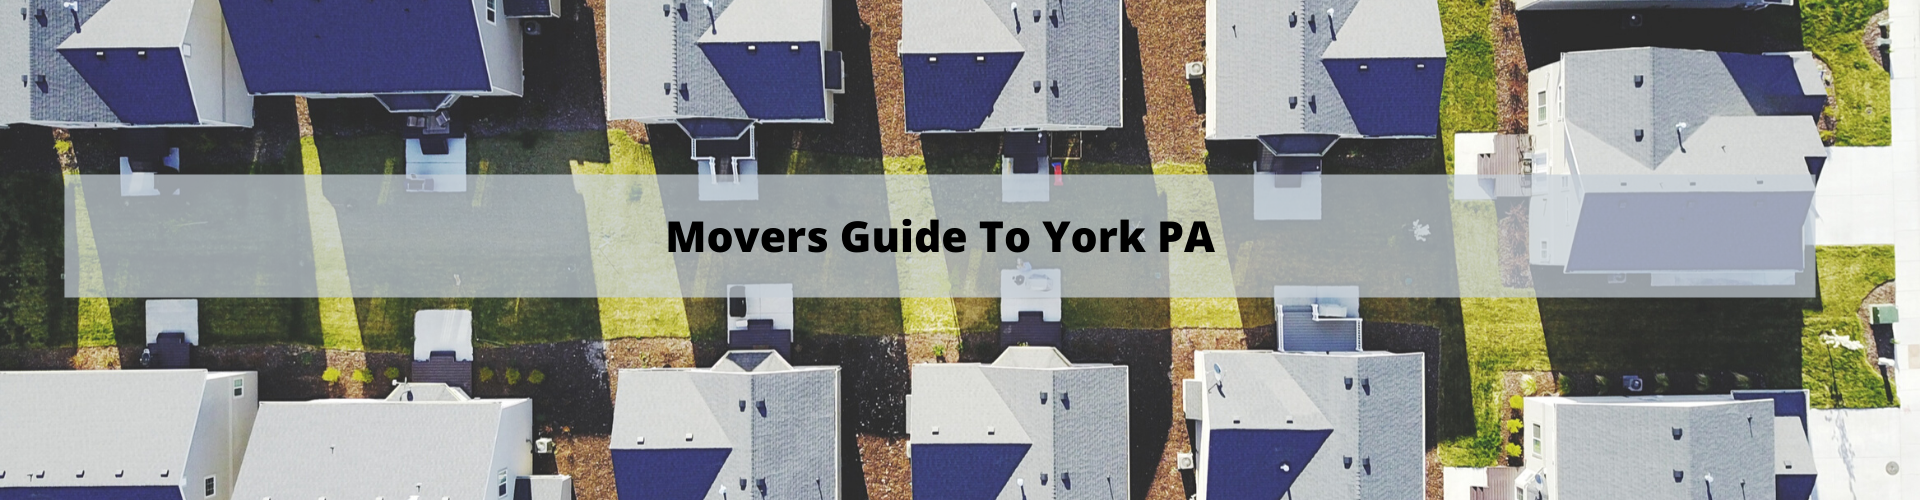 Movers Guide to York PA